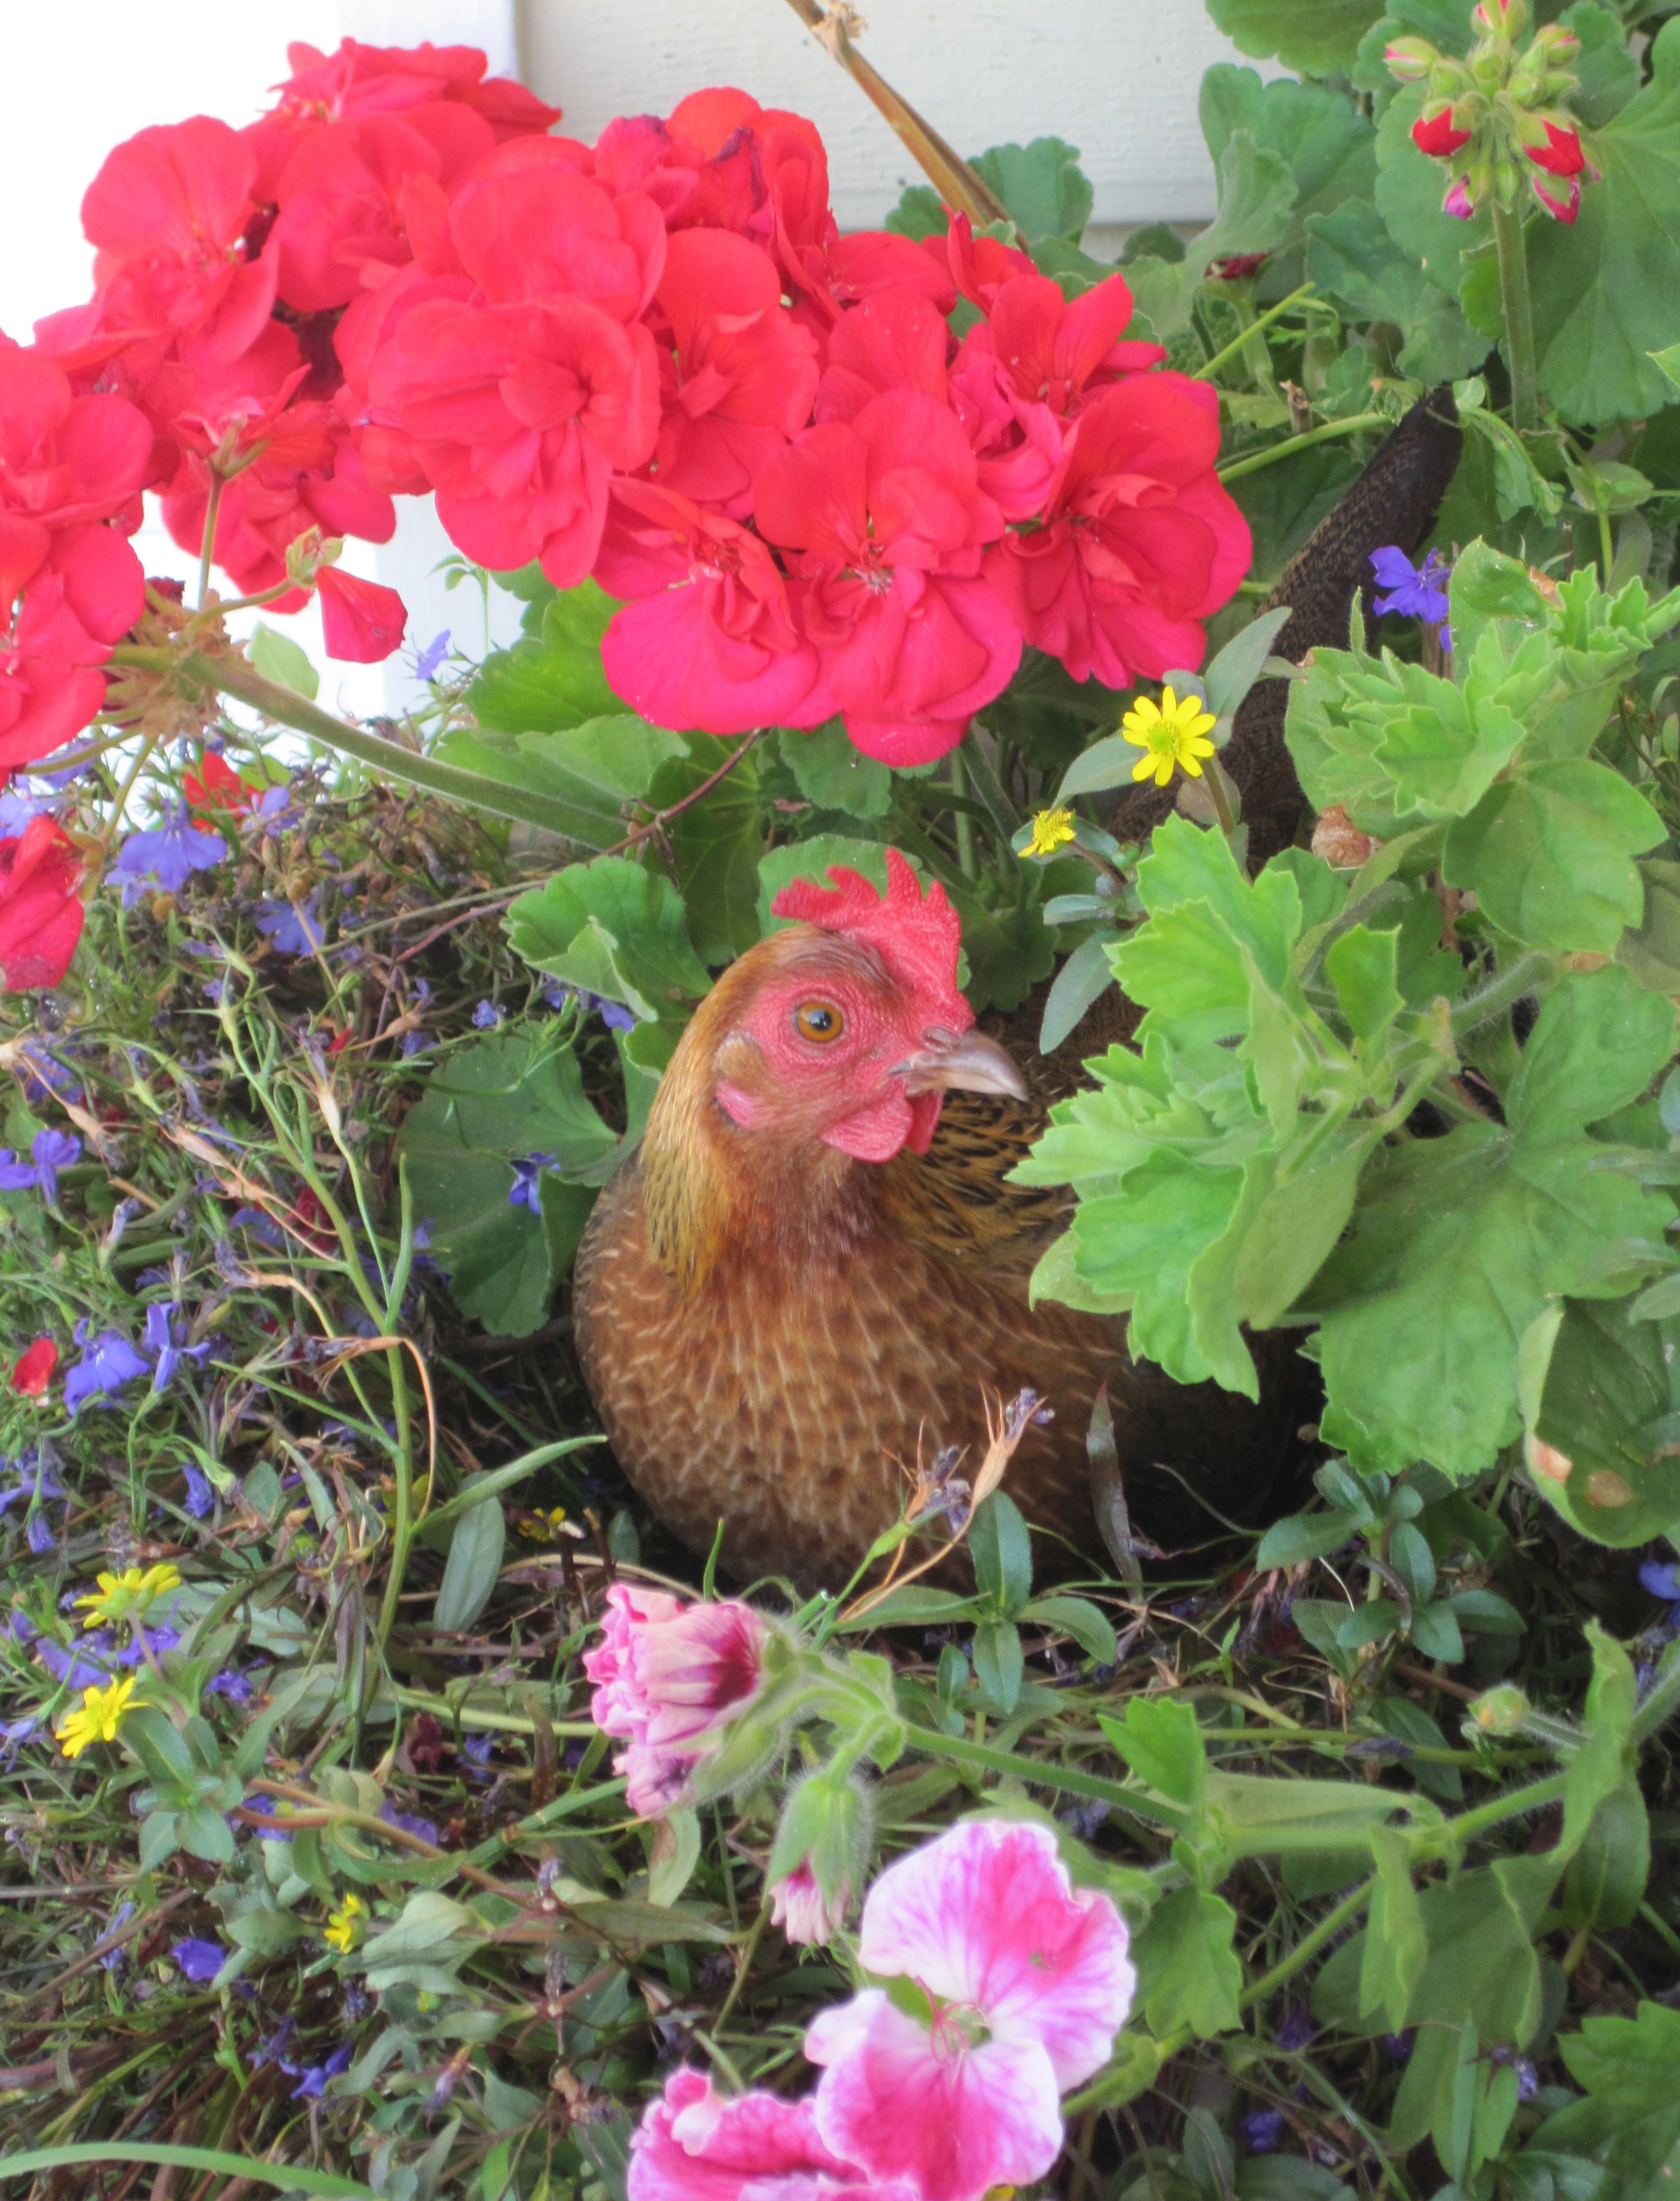 Banty chicken hen in a pot she was trying to nest there